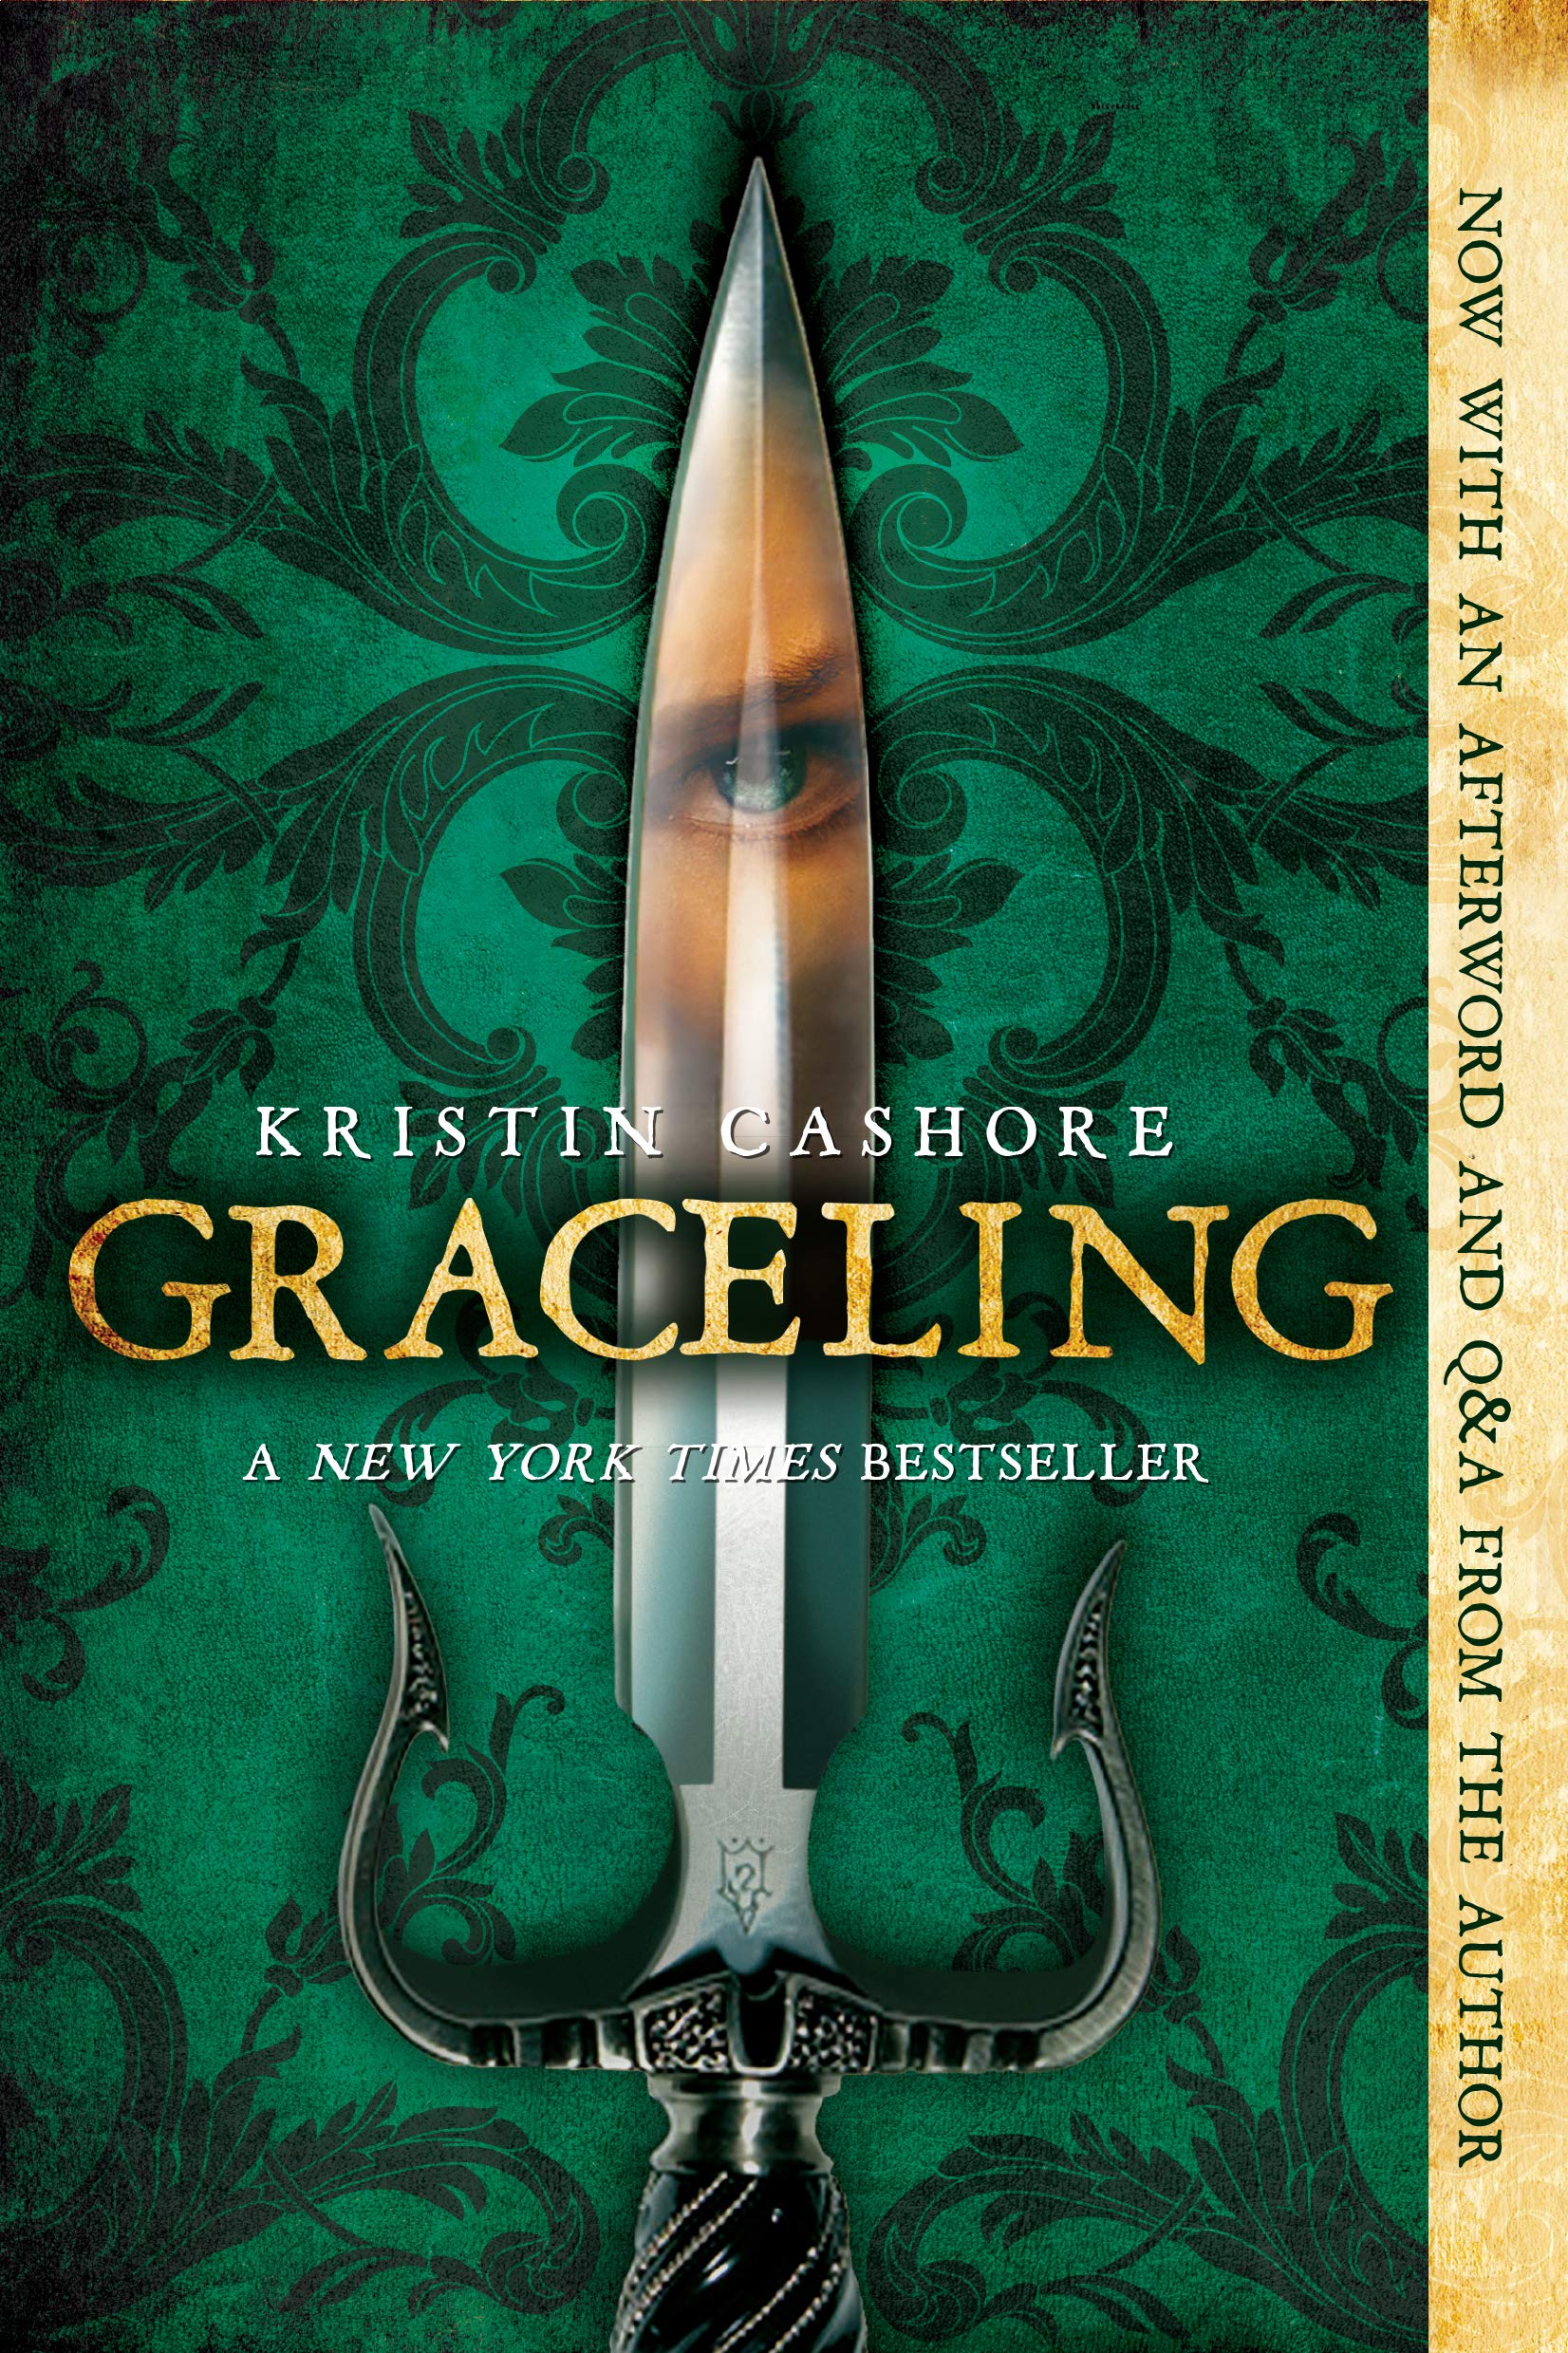 Amazon.com: Graceling (9780547258300): Cashore, Kristin: Books